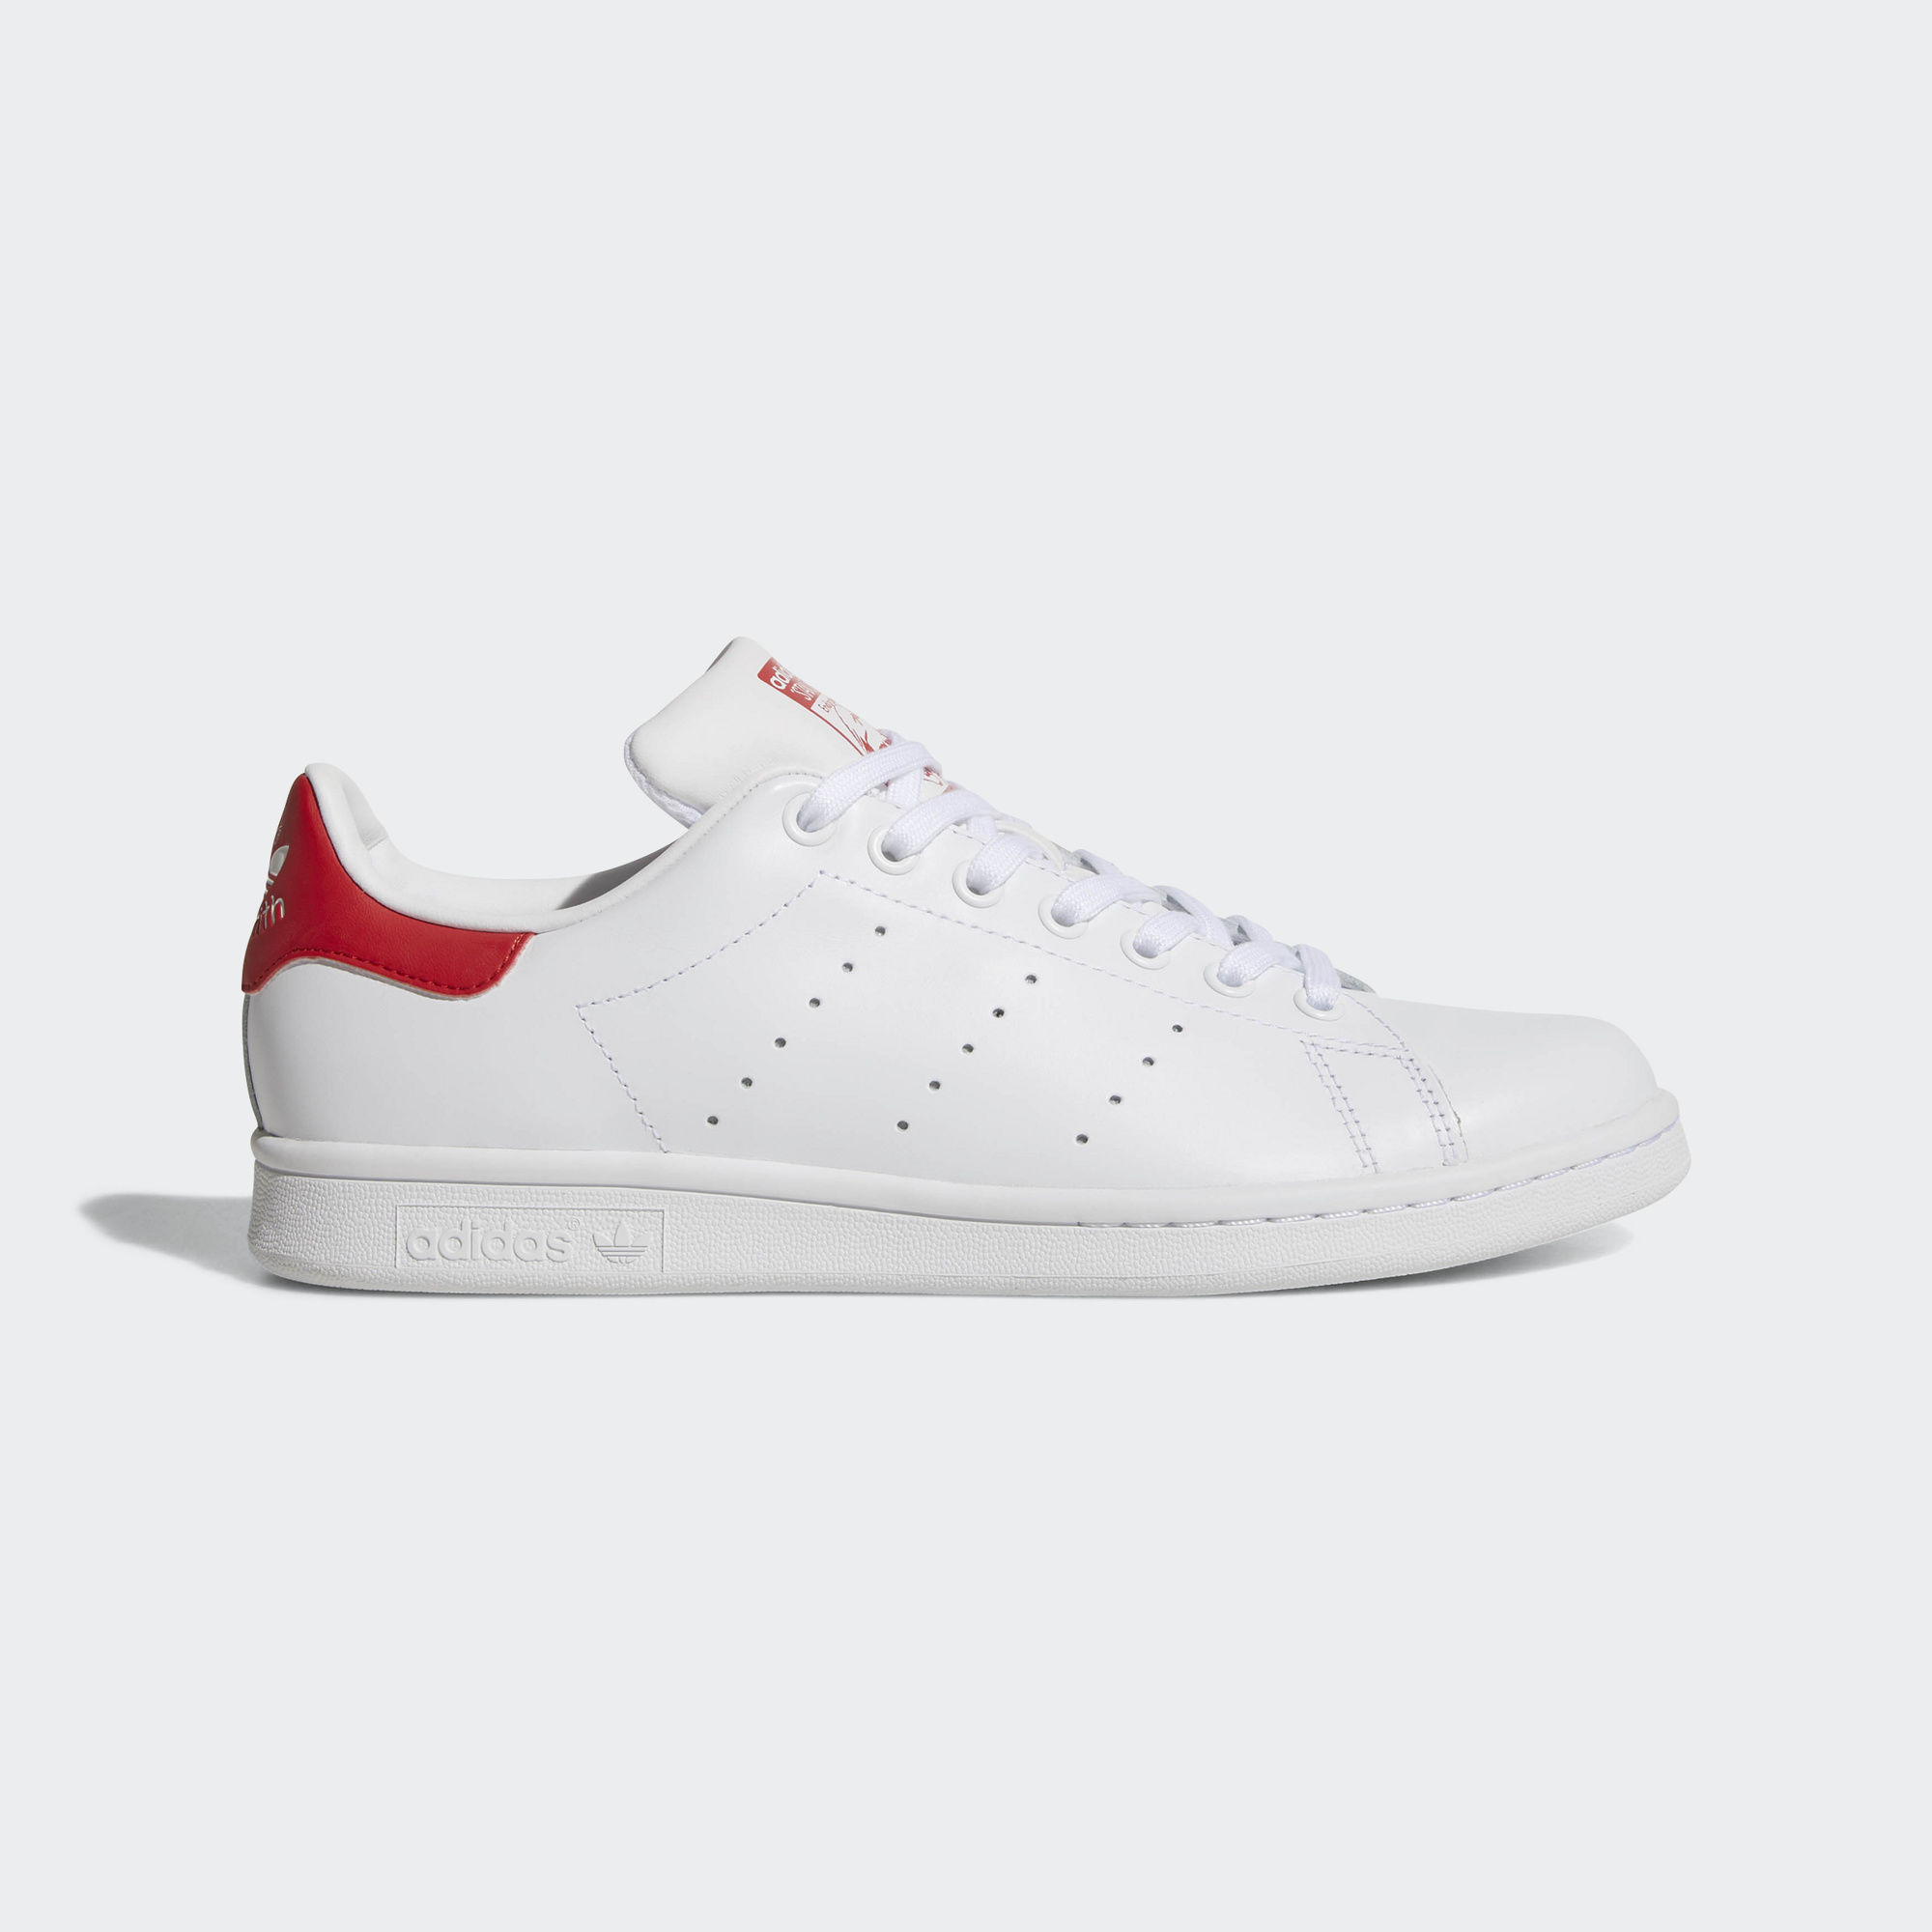 Adidas Stan Smith cloudfoam trainers